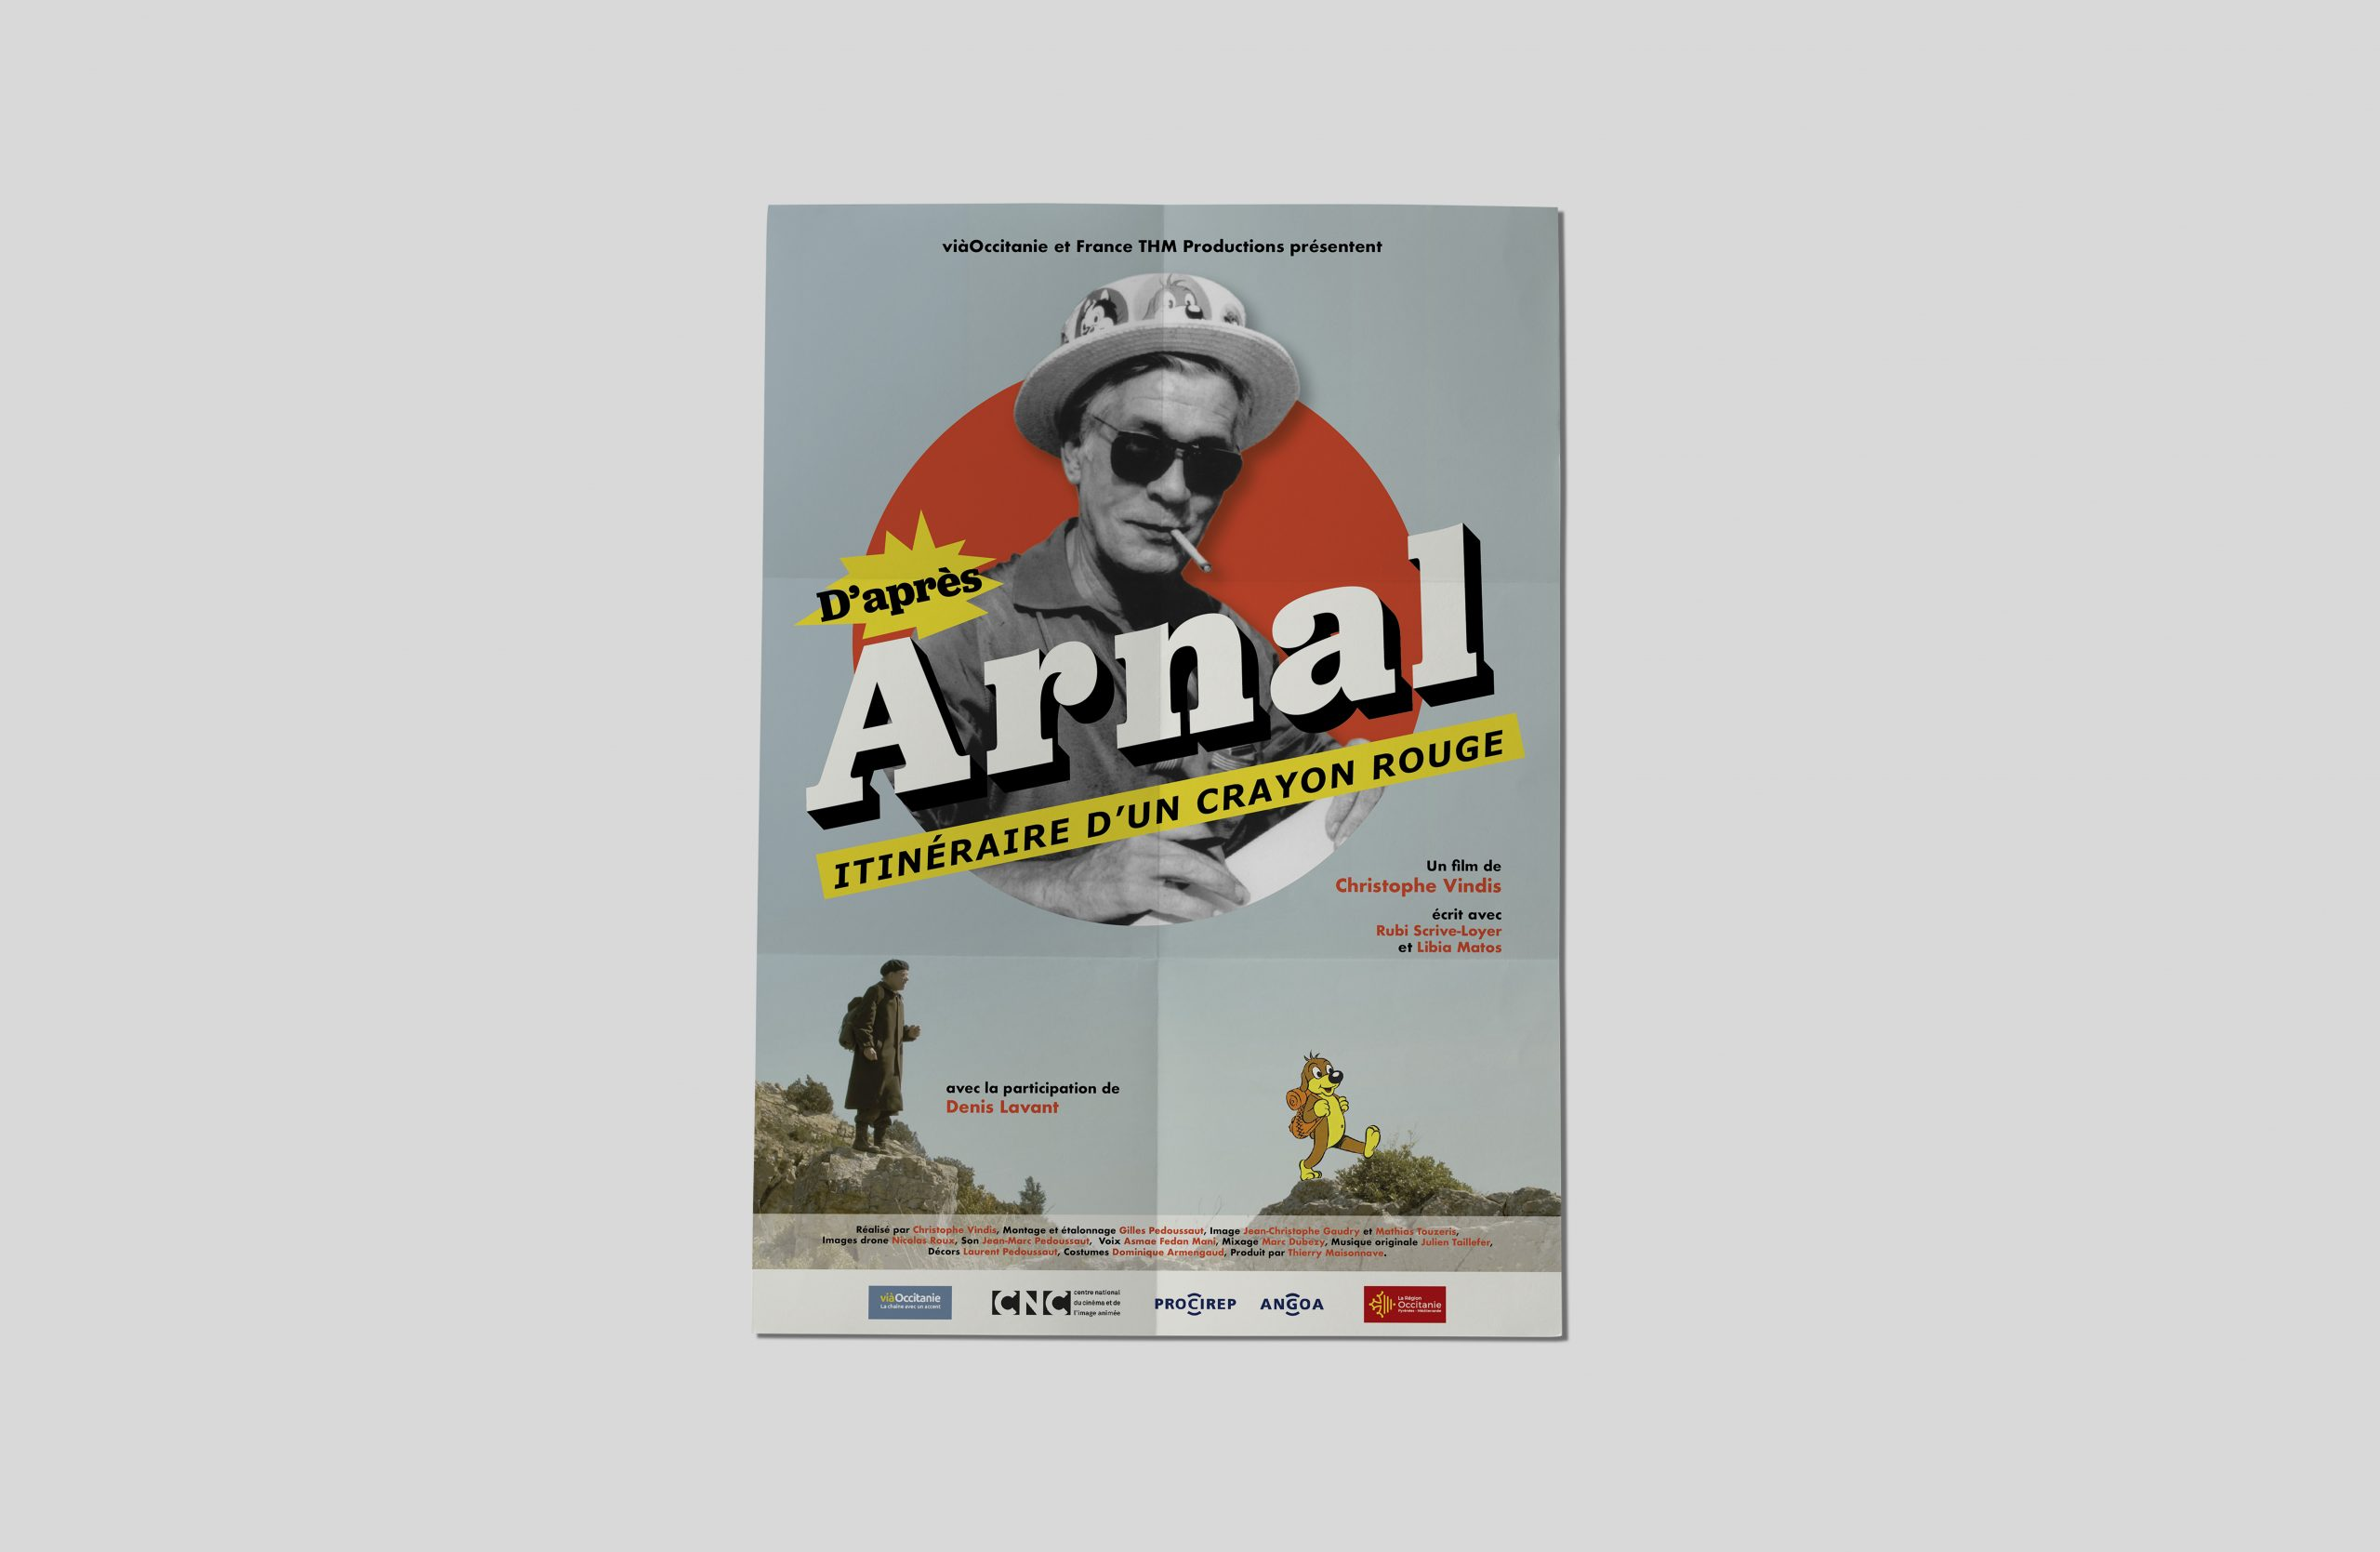 arnal pif affiche film documentaire